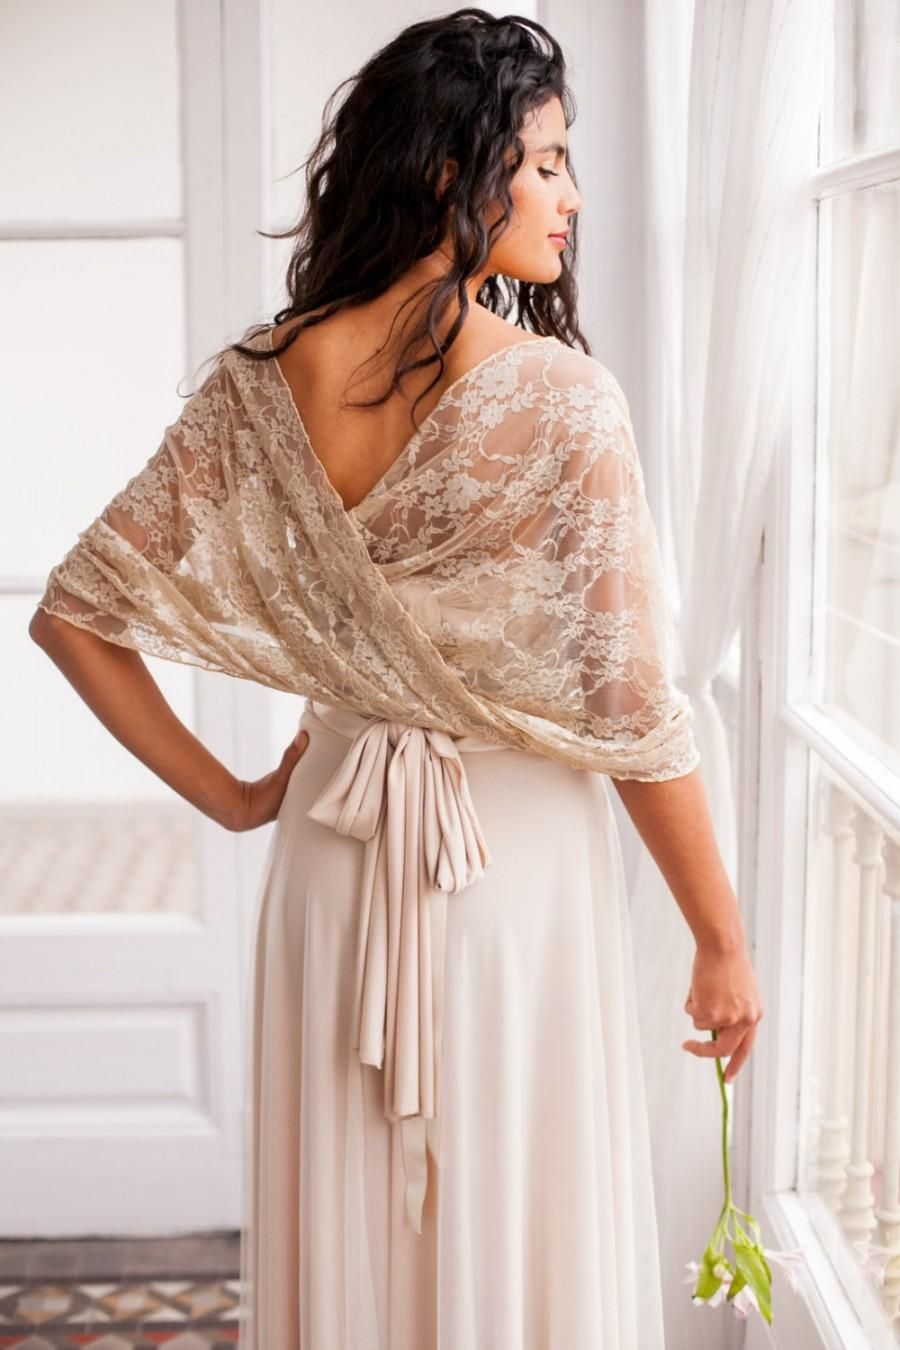 Bridal Cover Up Wedding Lace Shawl Wedding Gold Lace Shrug Champagne Lace Coverup Shawl Bridal Access Dress With Shawl Wedding Dress Shawl Bridal Cover Up